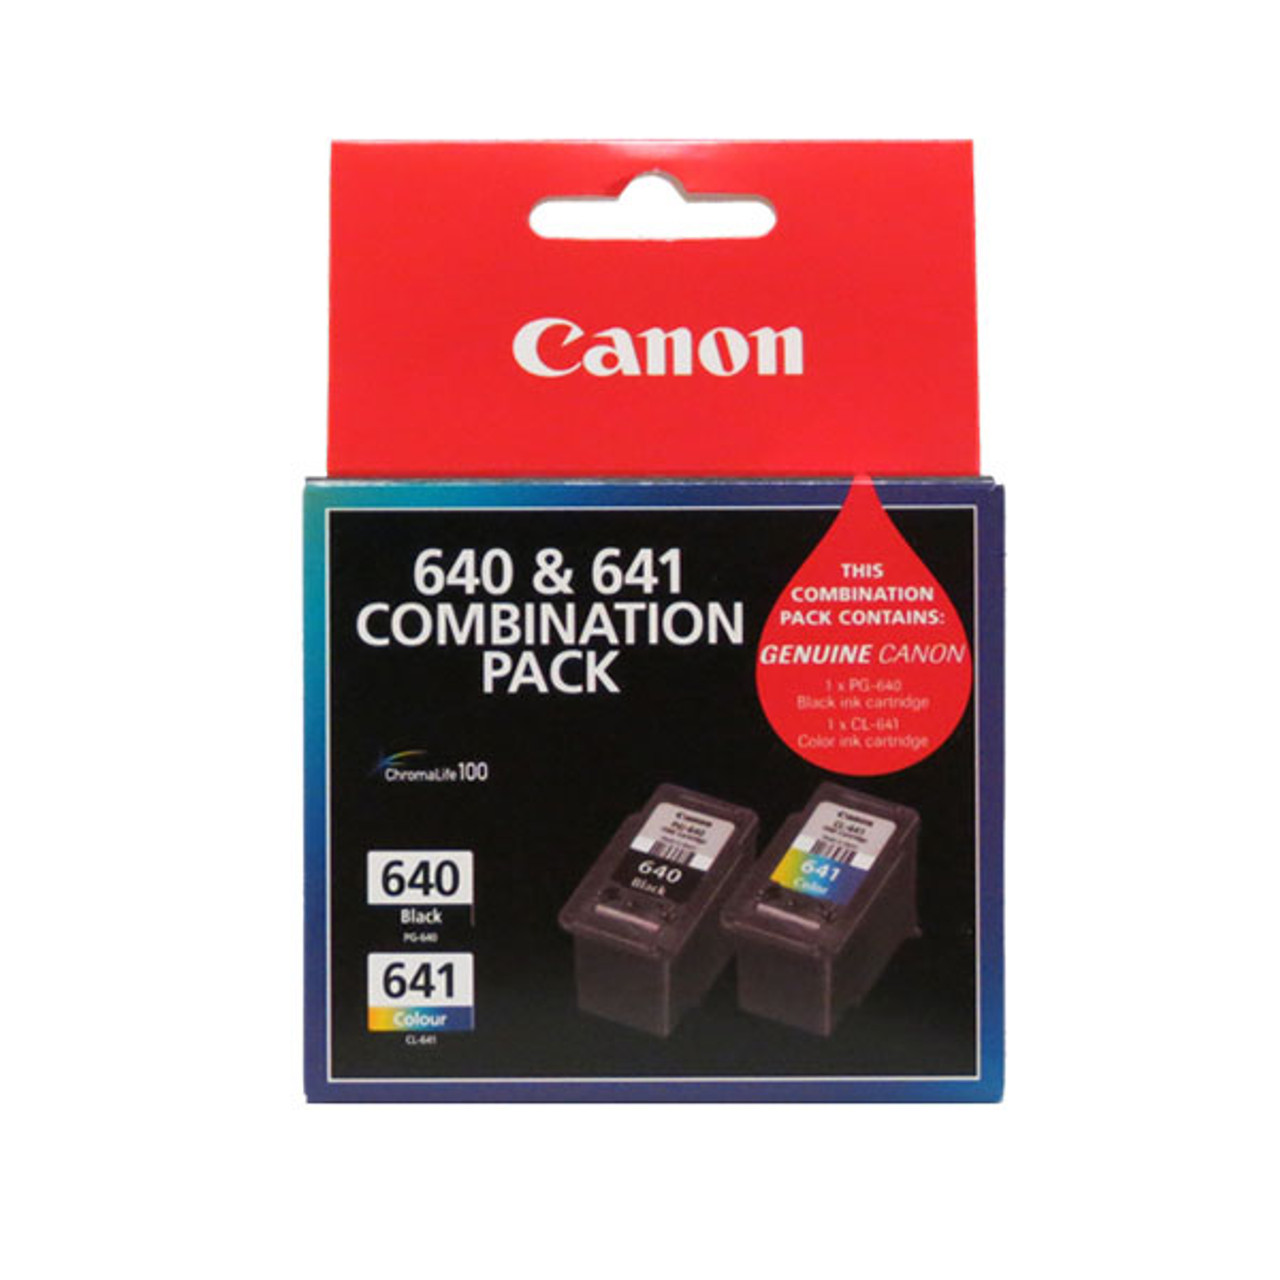 Image for Canon PG640 CL641 Twin Pack CX Computer Superstore